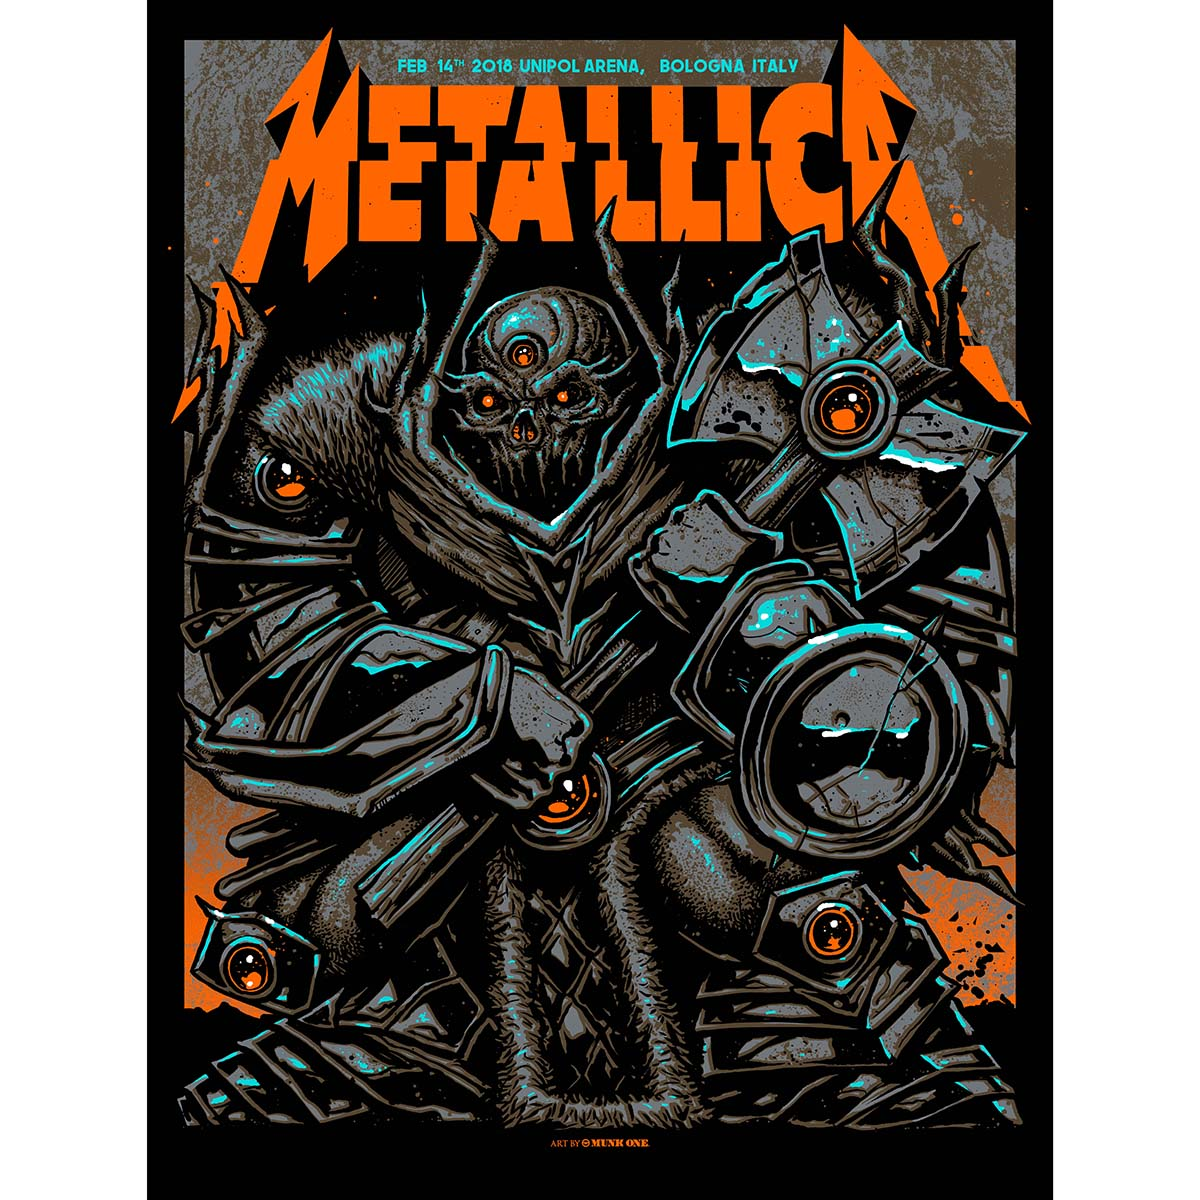 Bologna Feb 14th – Limited Edition Numbered Screen Printed Event Poster - Metallica